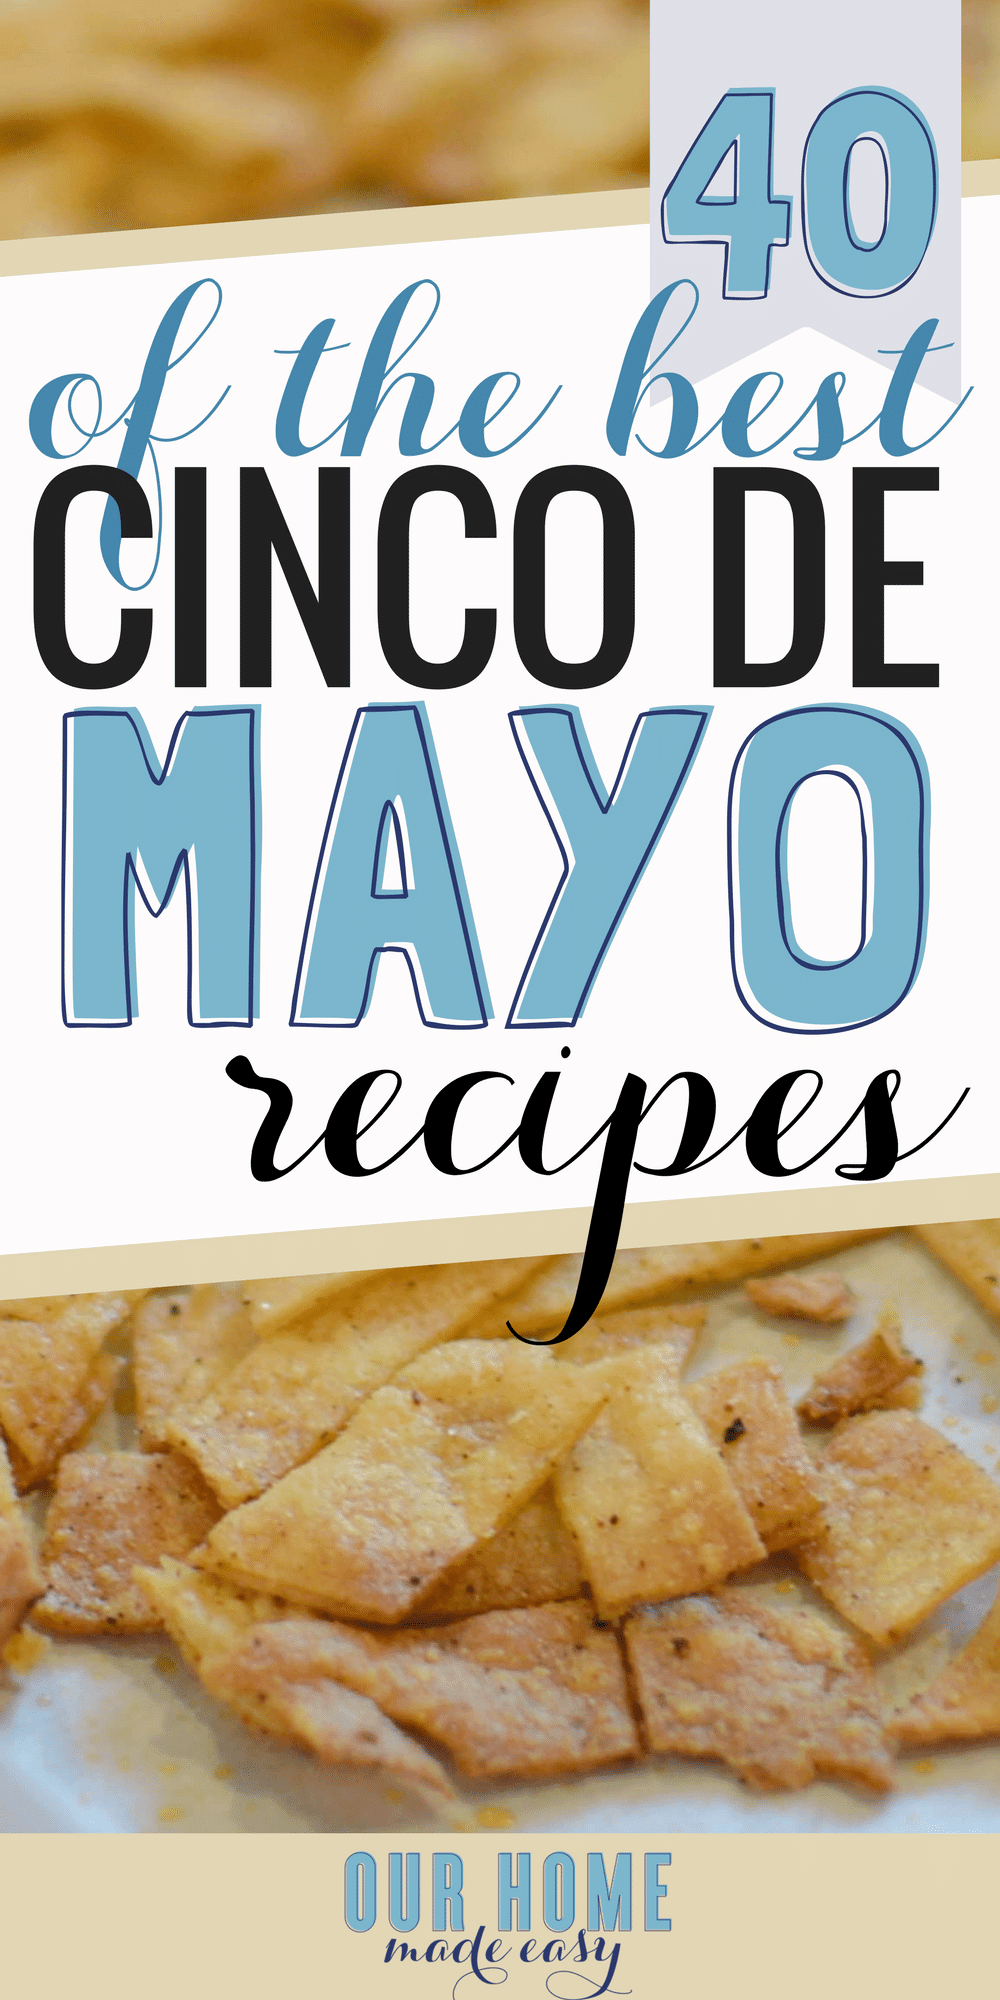 If you are looking for an excuse to celebrate Cinco de Mayo this year, I found more than 40 easy recipes for you to make! Click to see the easiest & tastiest recipes! #dinner #mexican #cincodemayo #easyrecipes